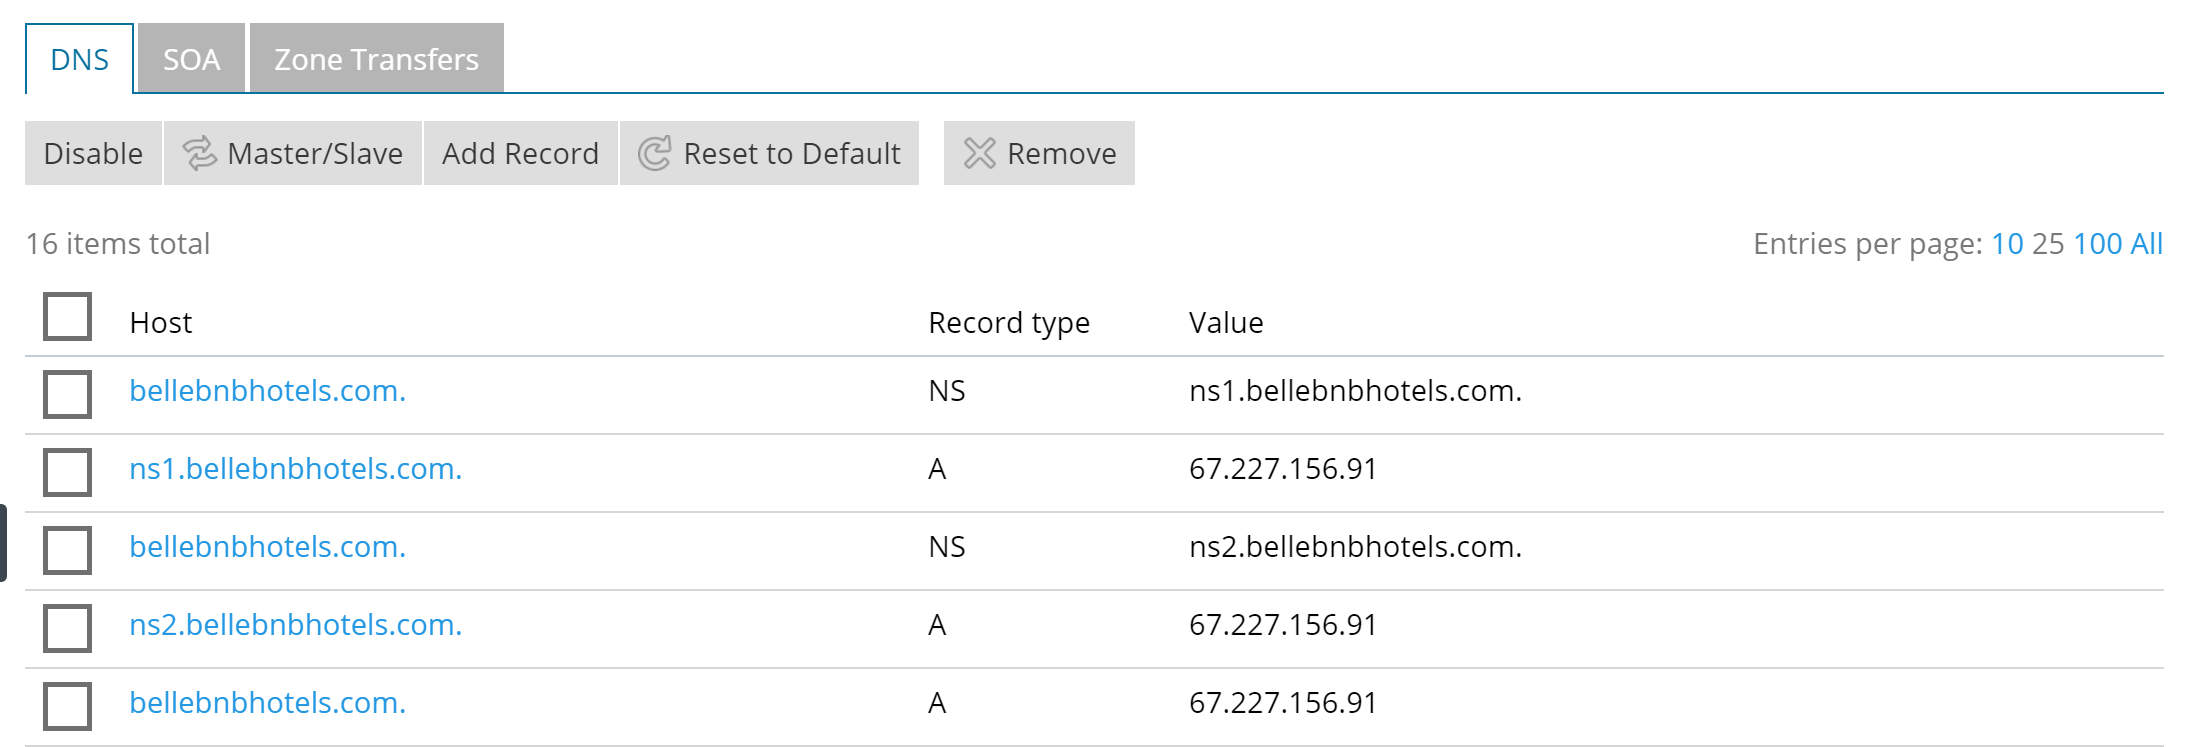 Hotel website DNS Setting for PMS Software